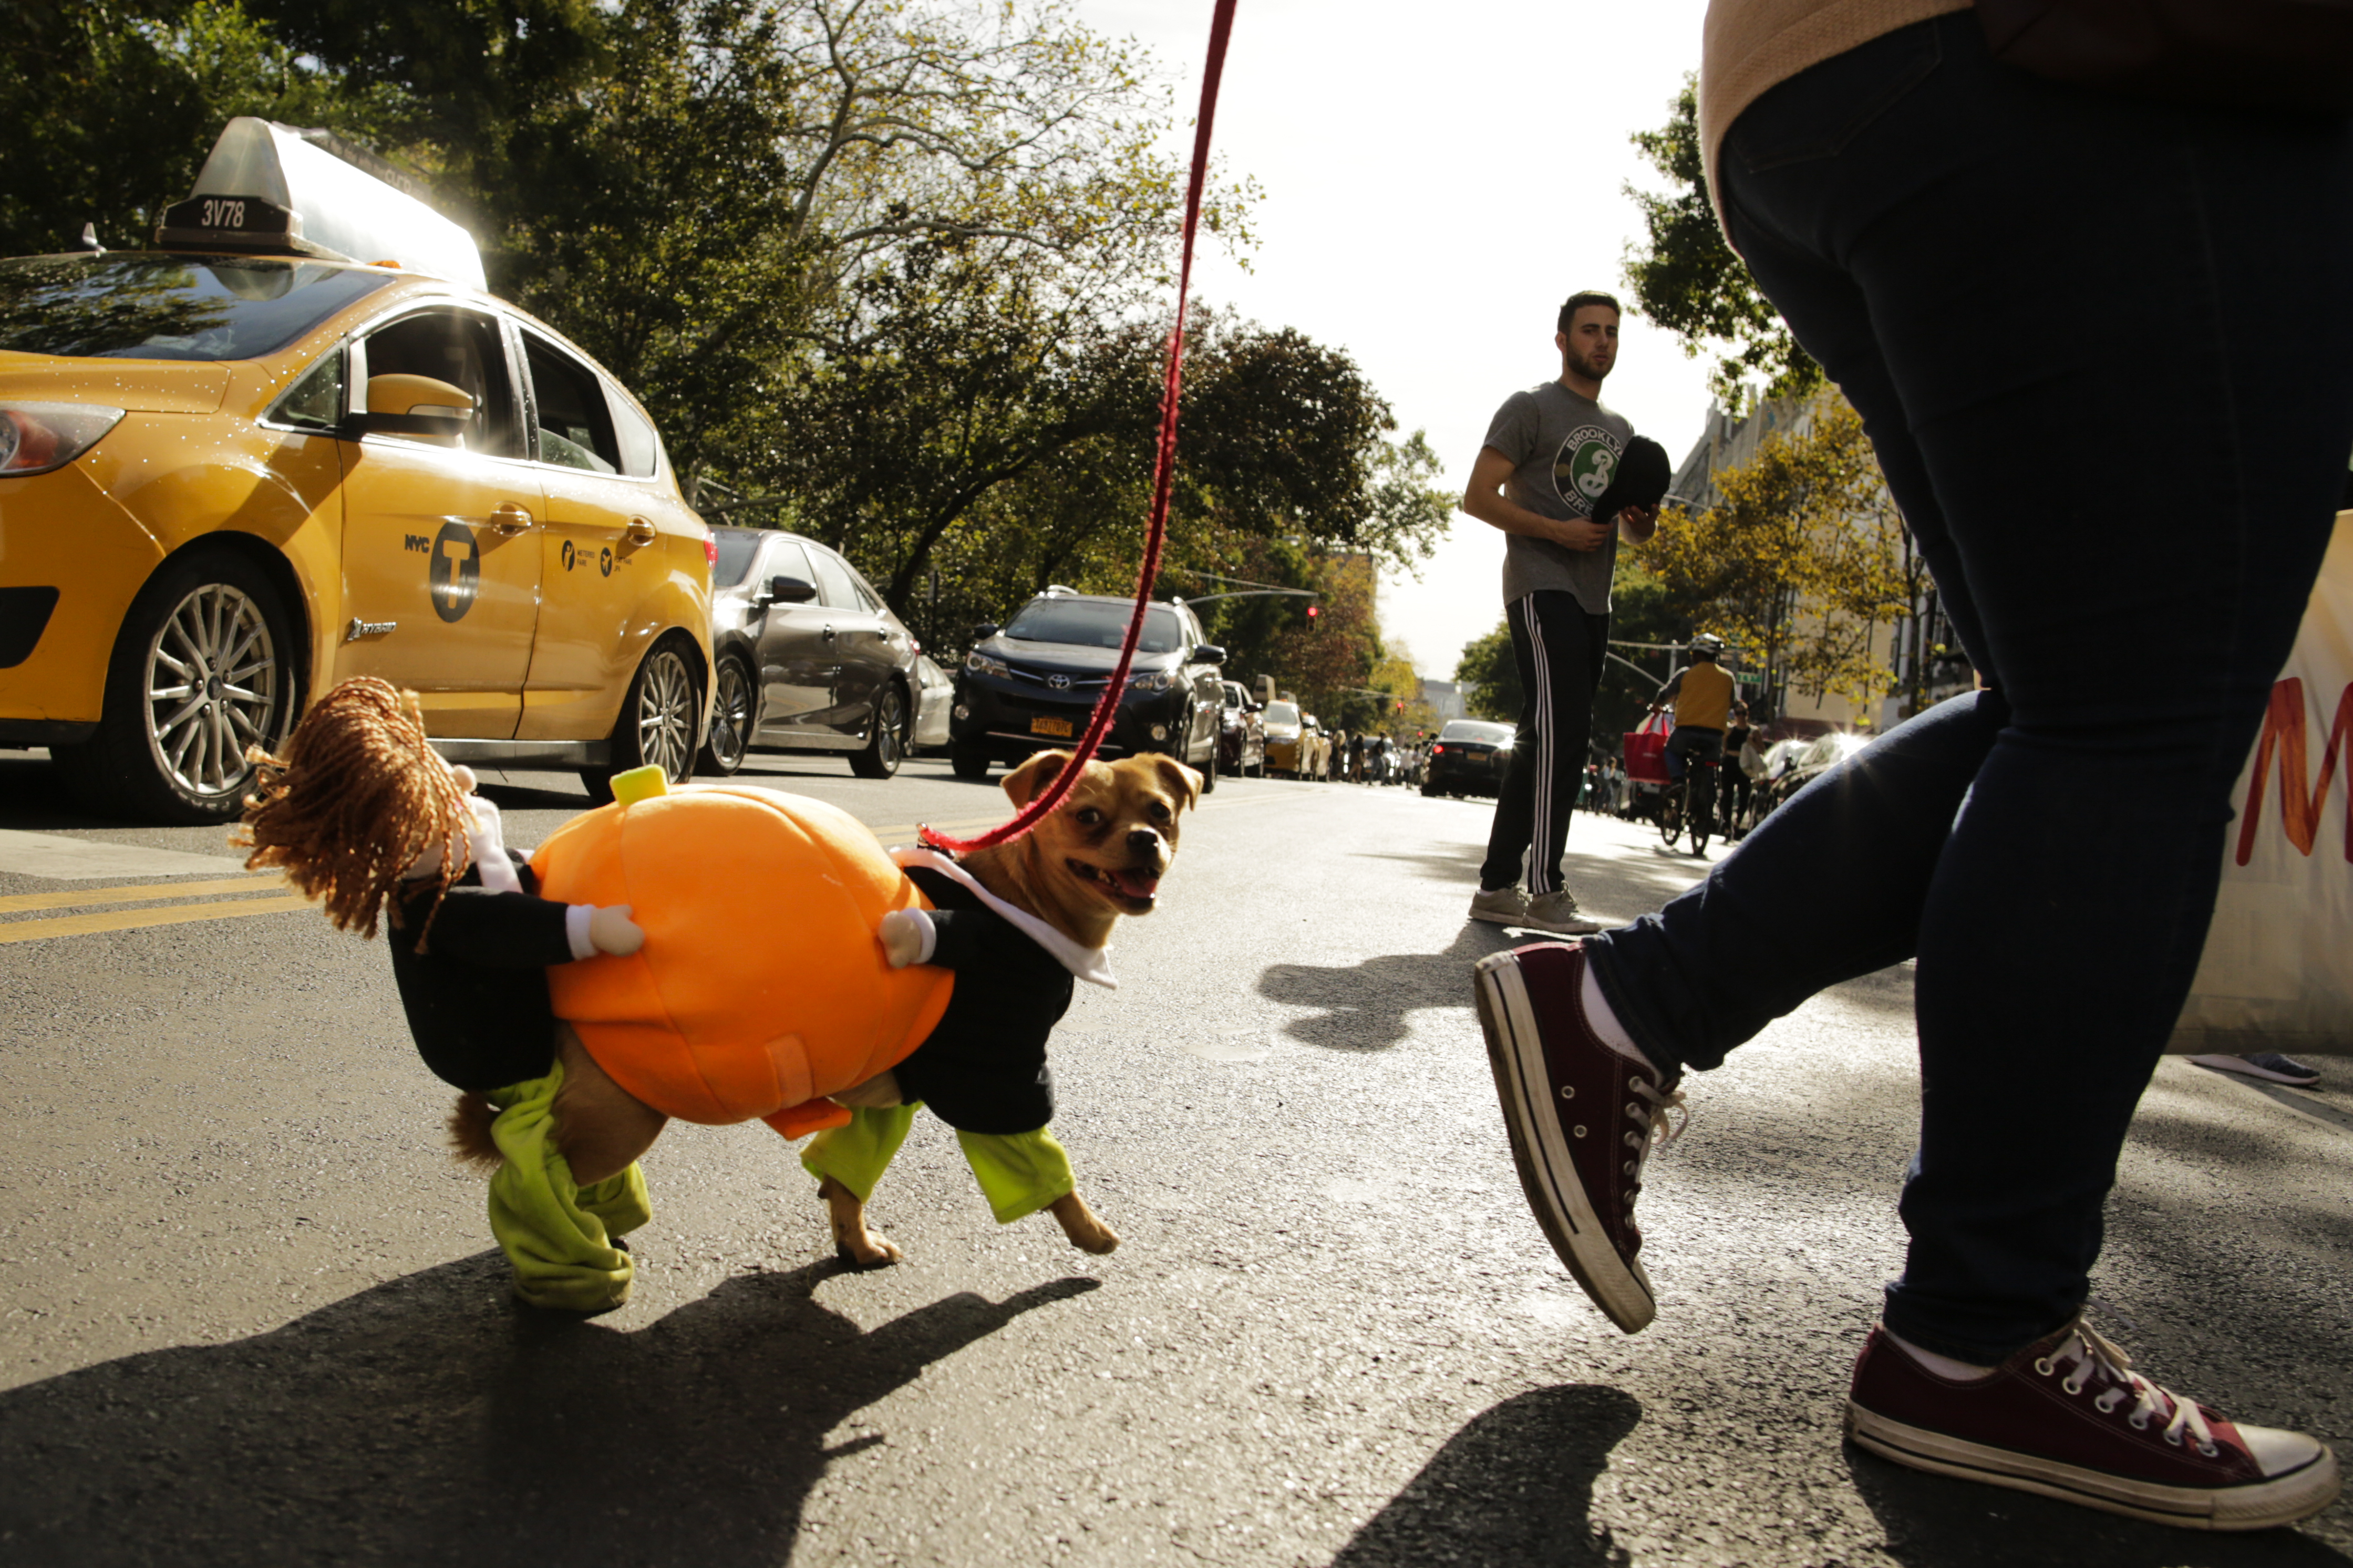 Pups in Costume at the NYC Halloween Dog Parade